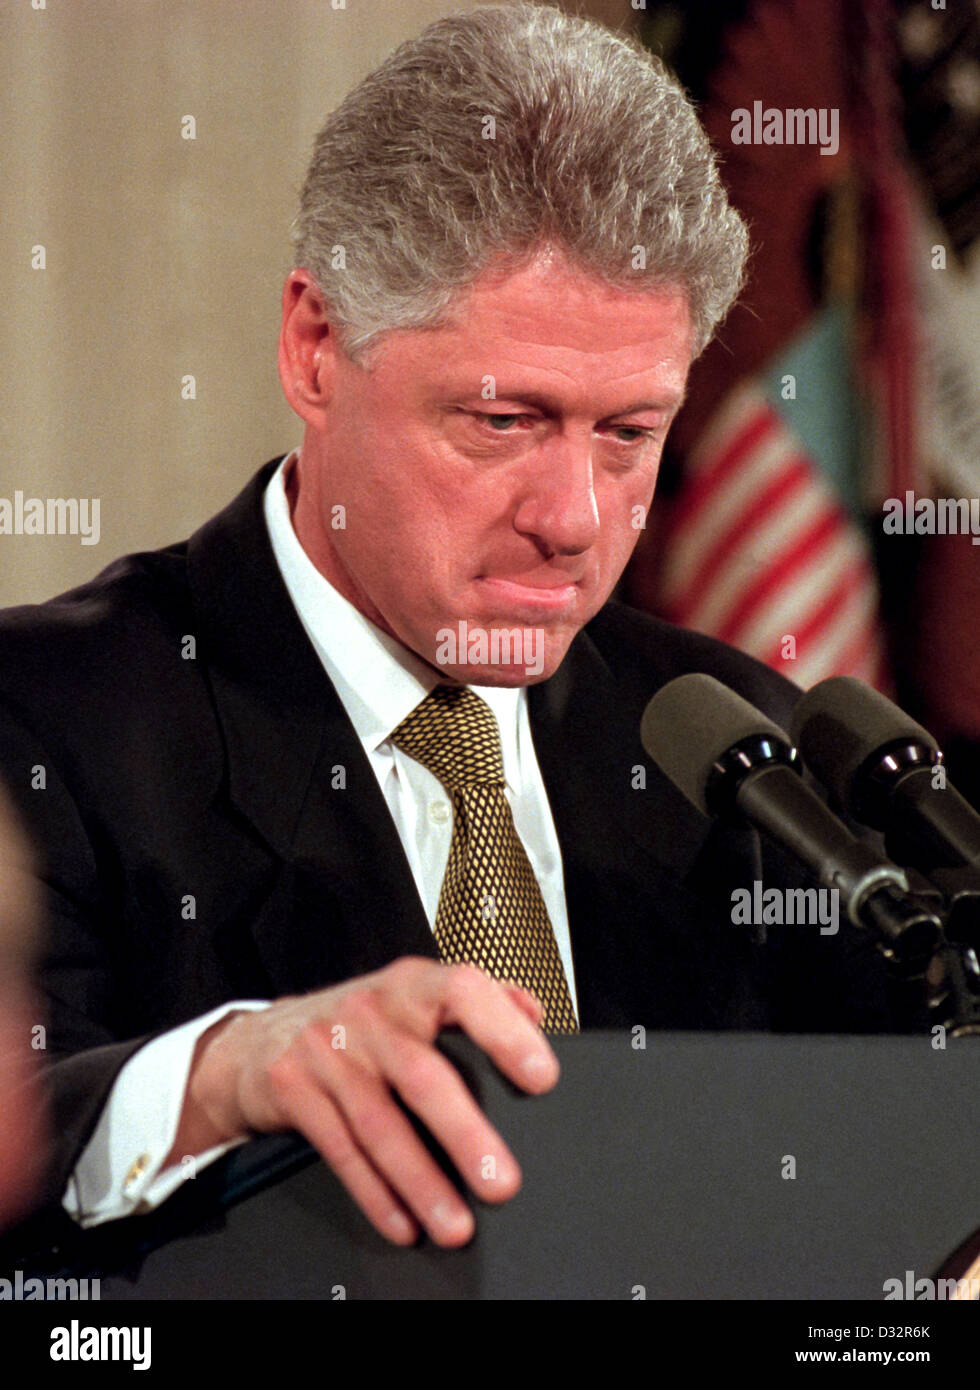 US President Bill Clinton during a press conference at the White House July 1, 1999 in Washington, DC. - Stock Image